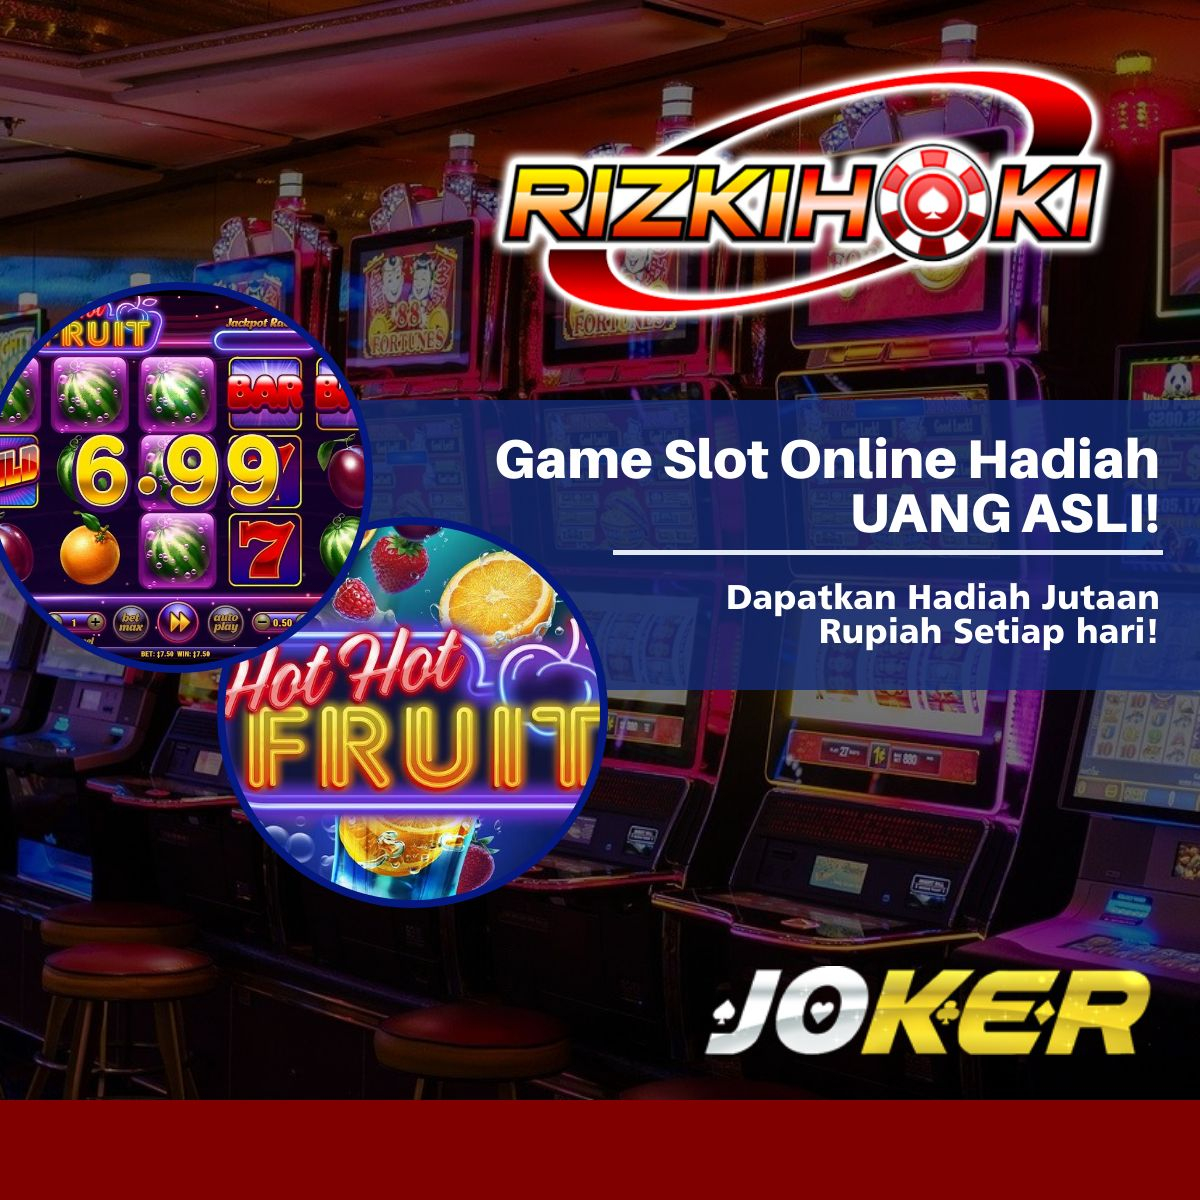 Video Slot Pragmatic Di Kecamatan Entikong, Kalimantan Barat